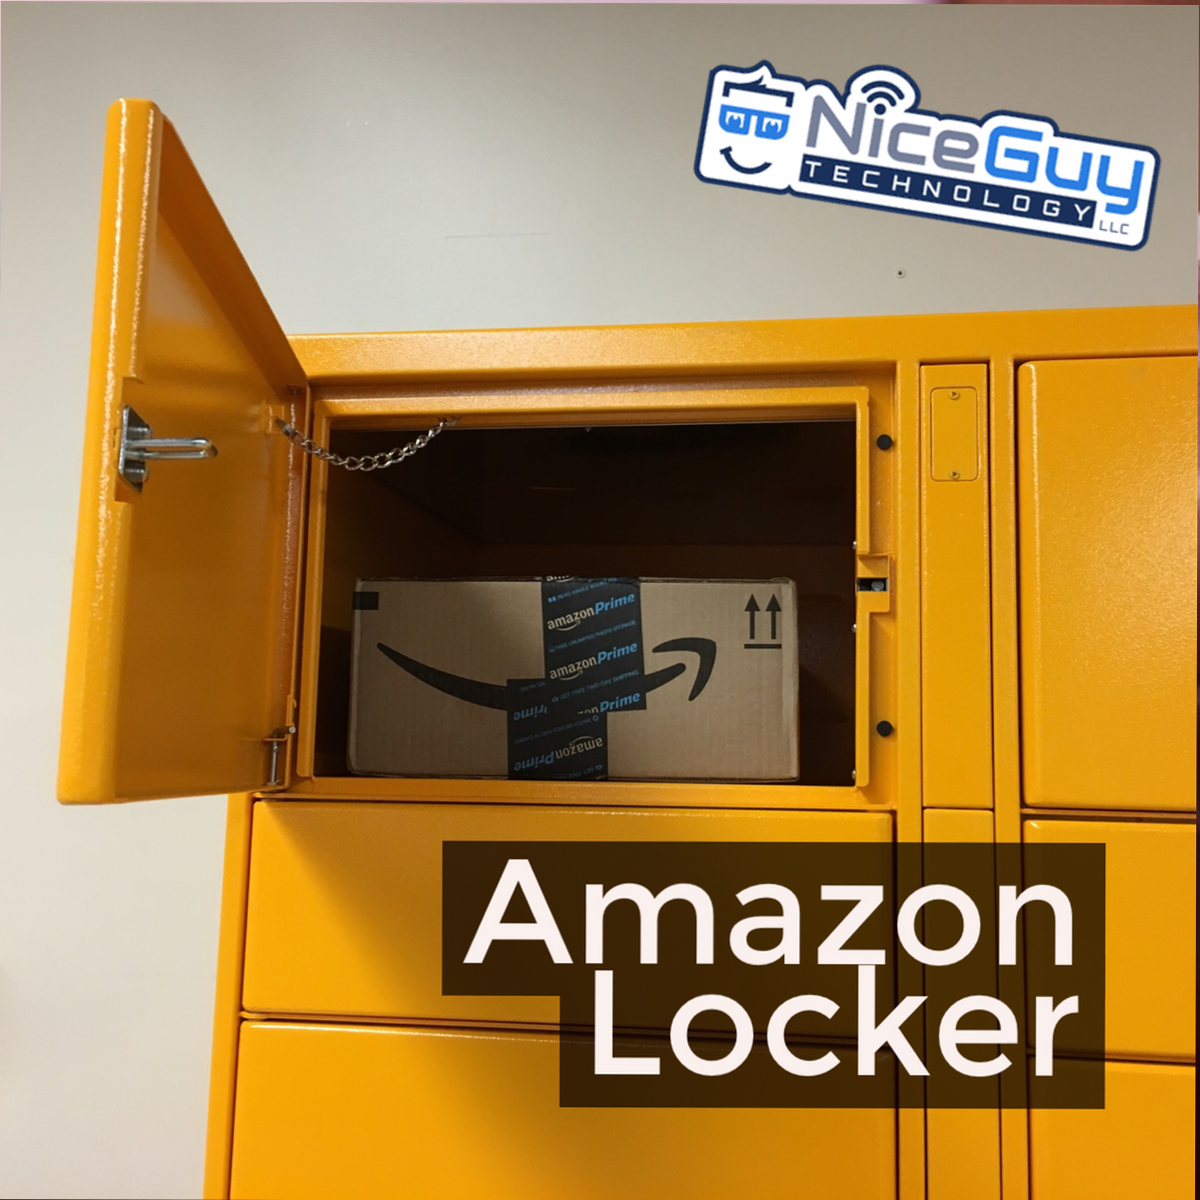 In this blog post, Mike Pahl from Nice Guy Technology LLC explains what Amazon Locker is and why you might want to ship packages to an Amazon Locker instead of your home.